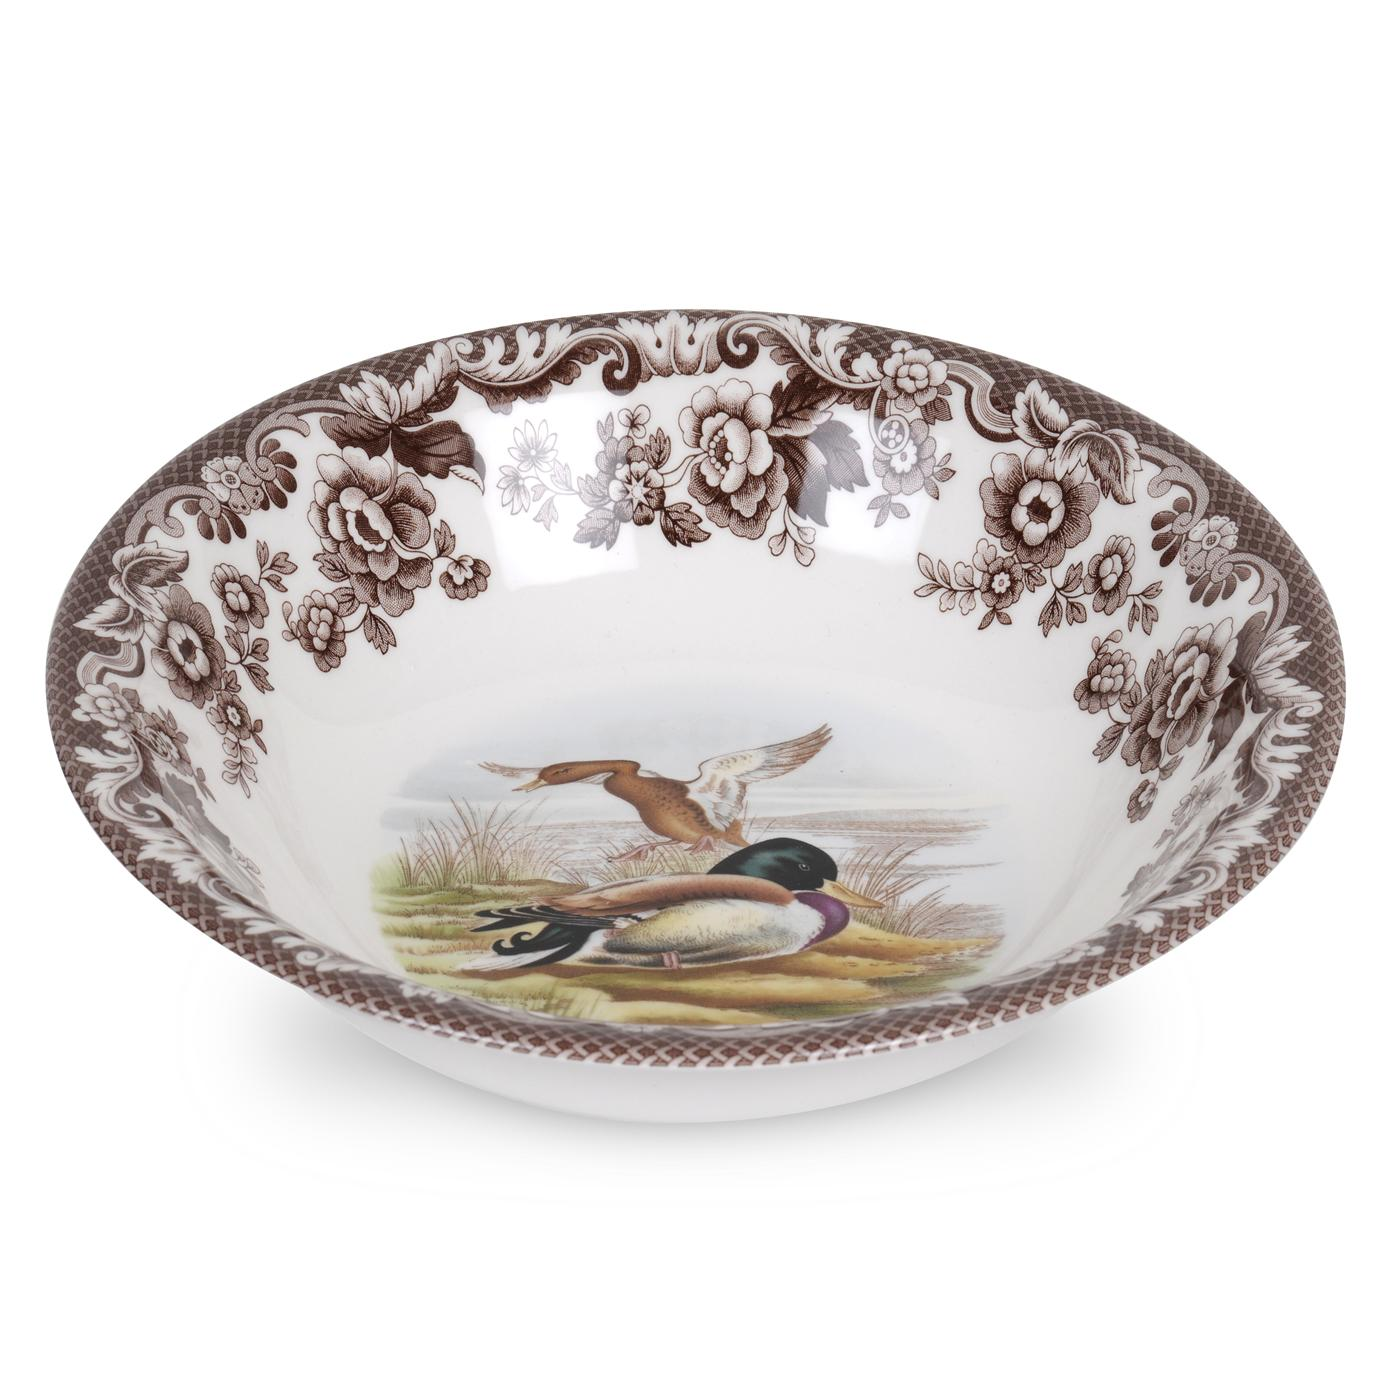 Spode Woodland Ascot Cereal Bowl 8 Inch (Mallard) image number 0